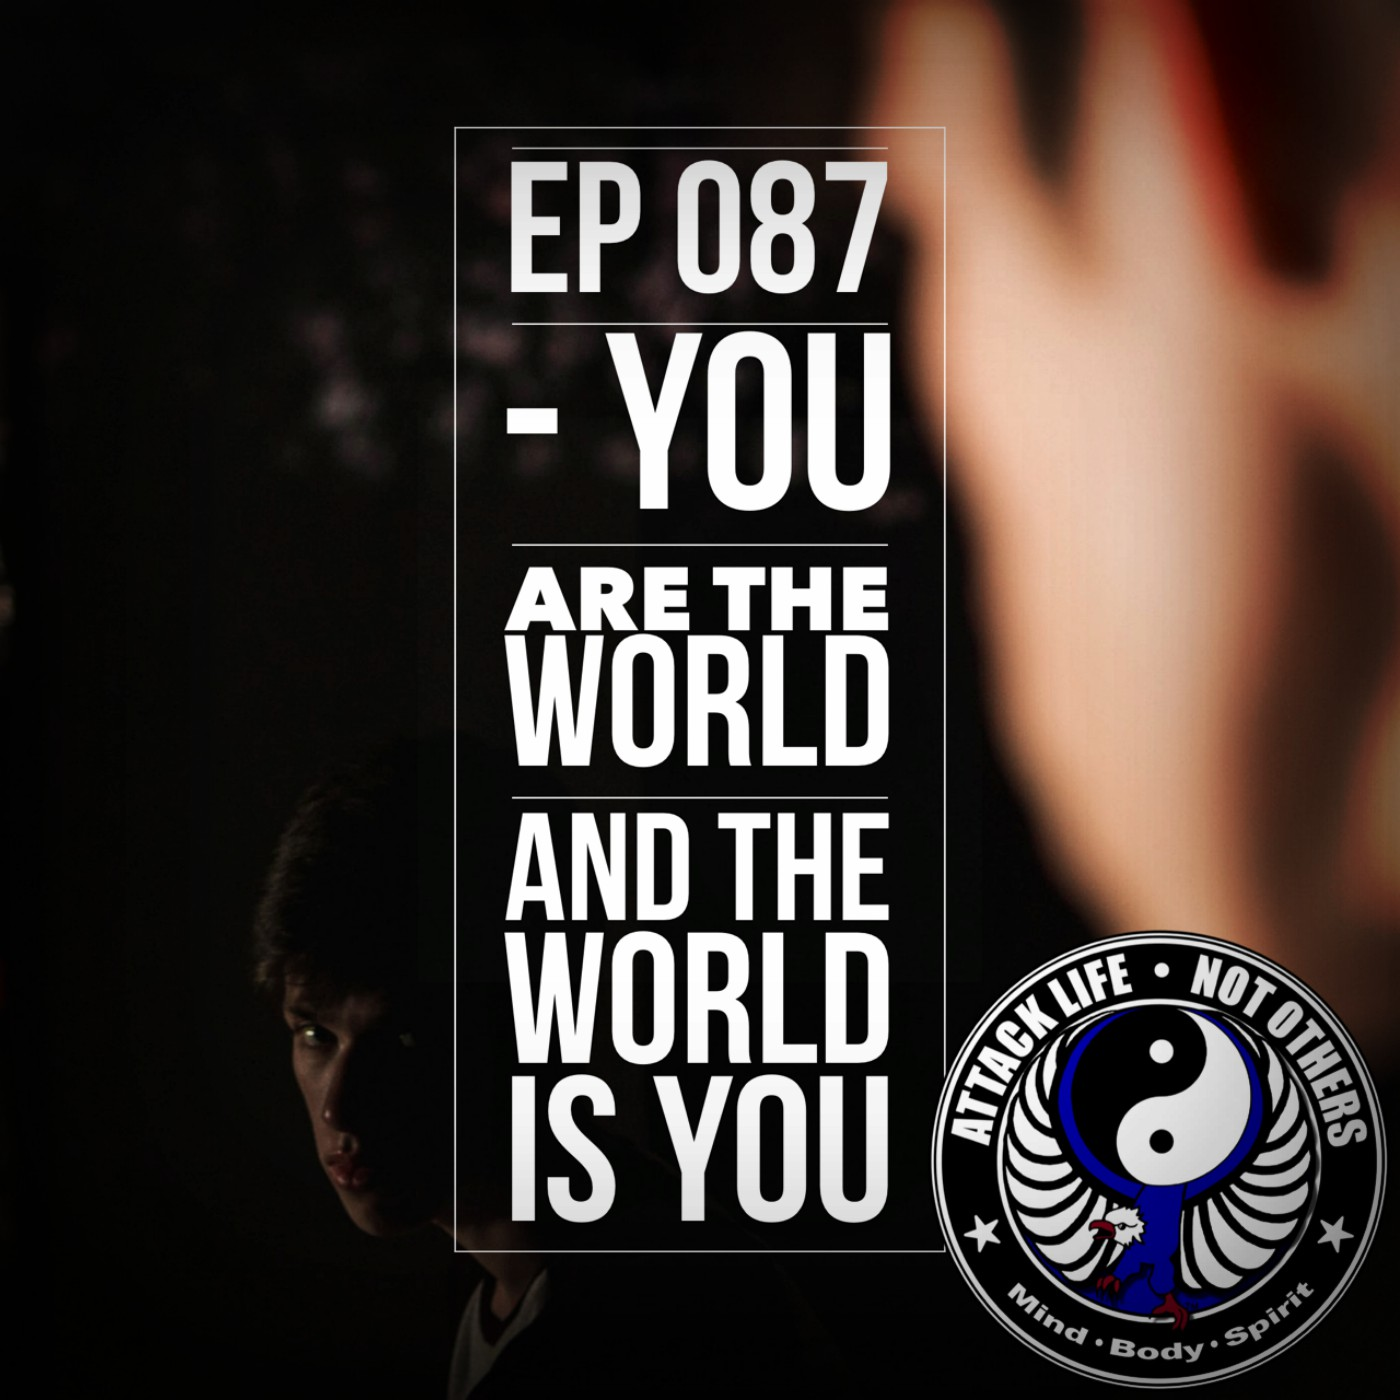 Ep 087 - You Are The World and The World Is You